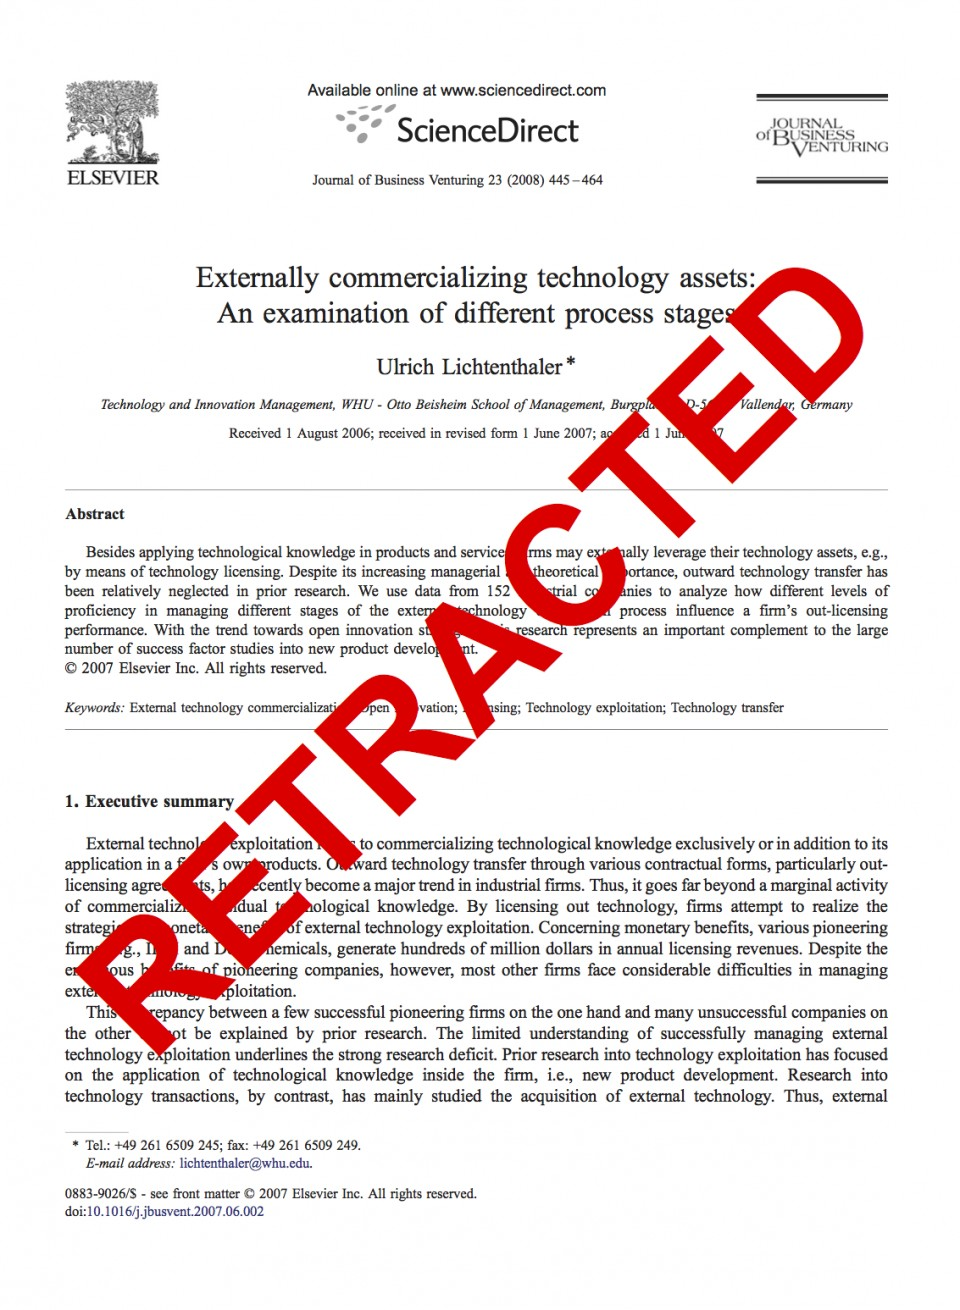 008 Research Paper 2010jbv Lichtenthalerretracted Can You Buy Amazing Papers 960